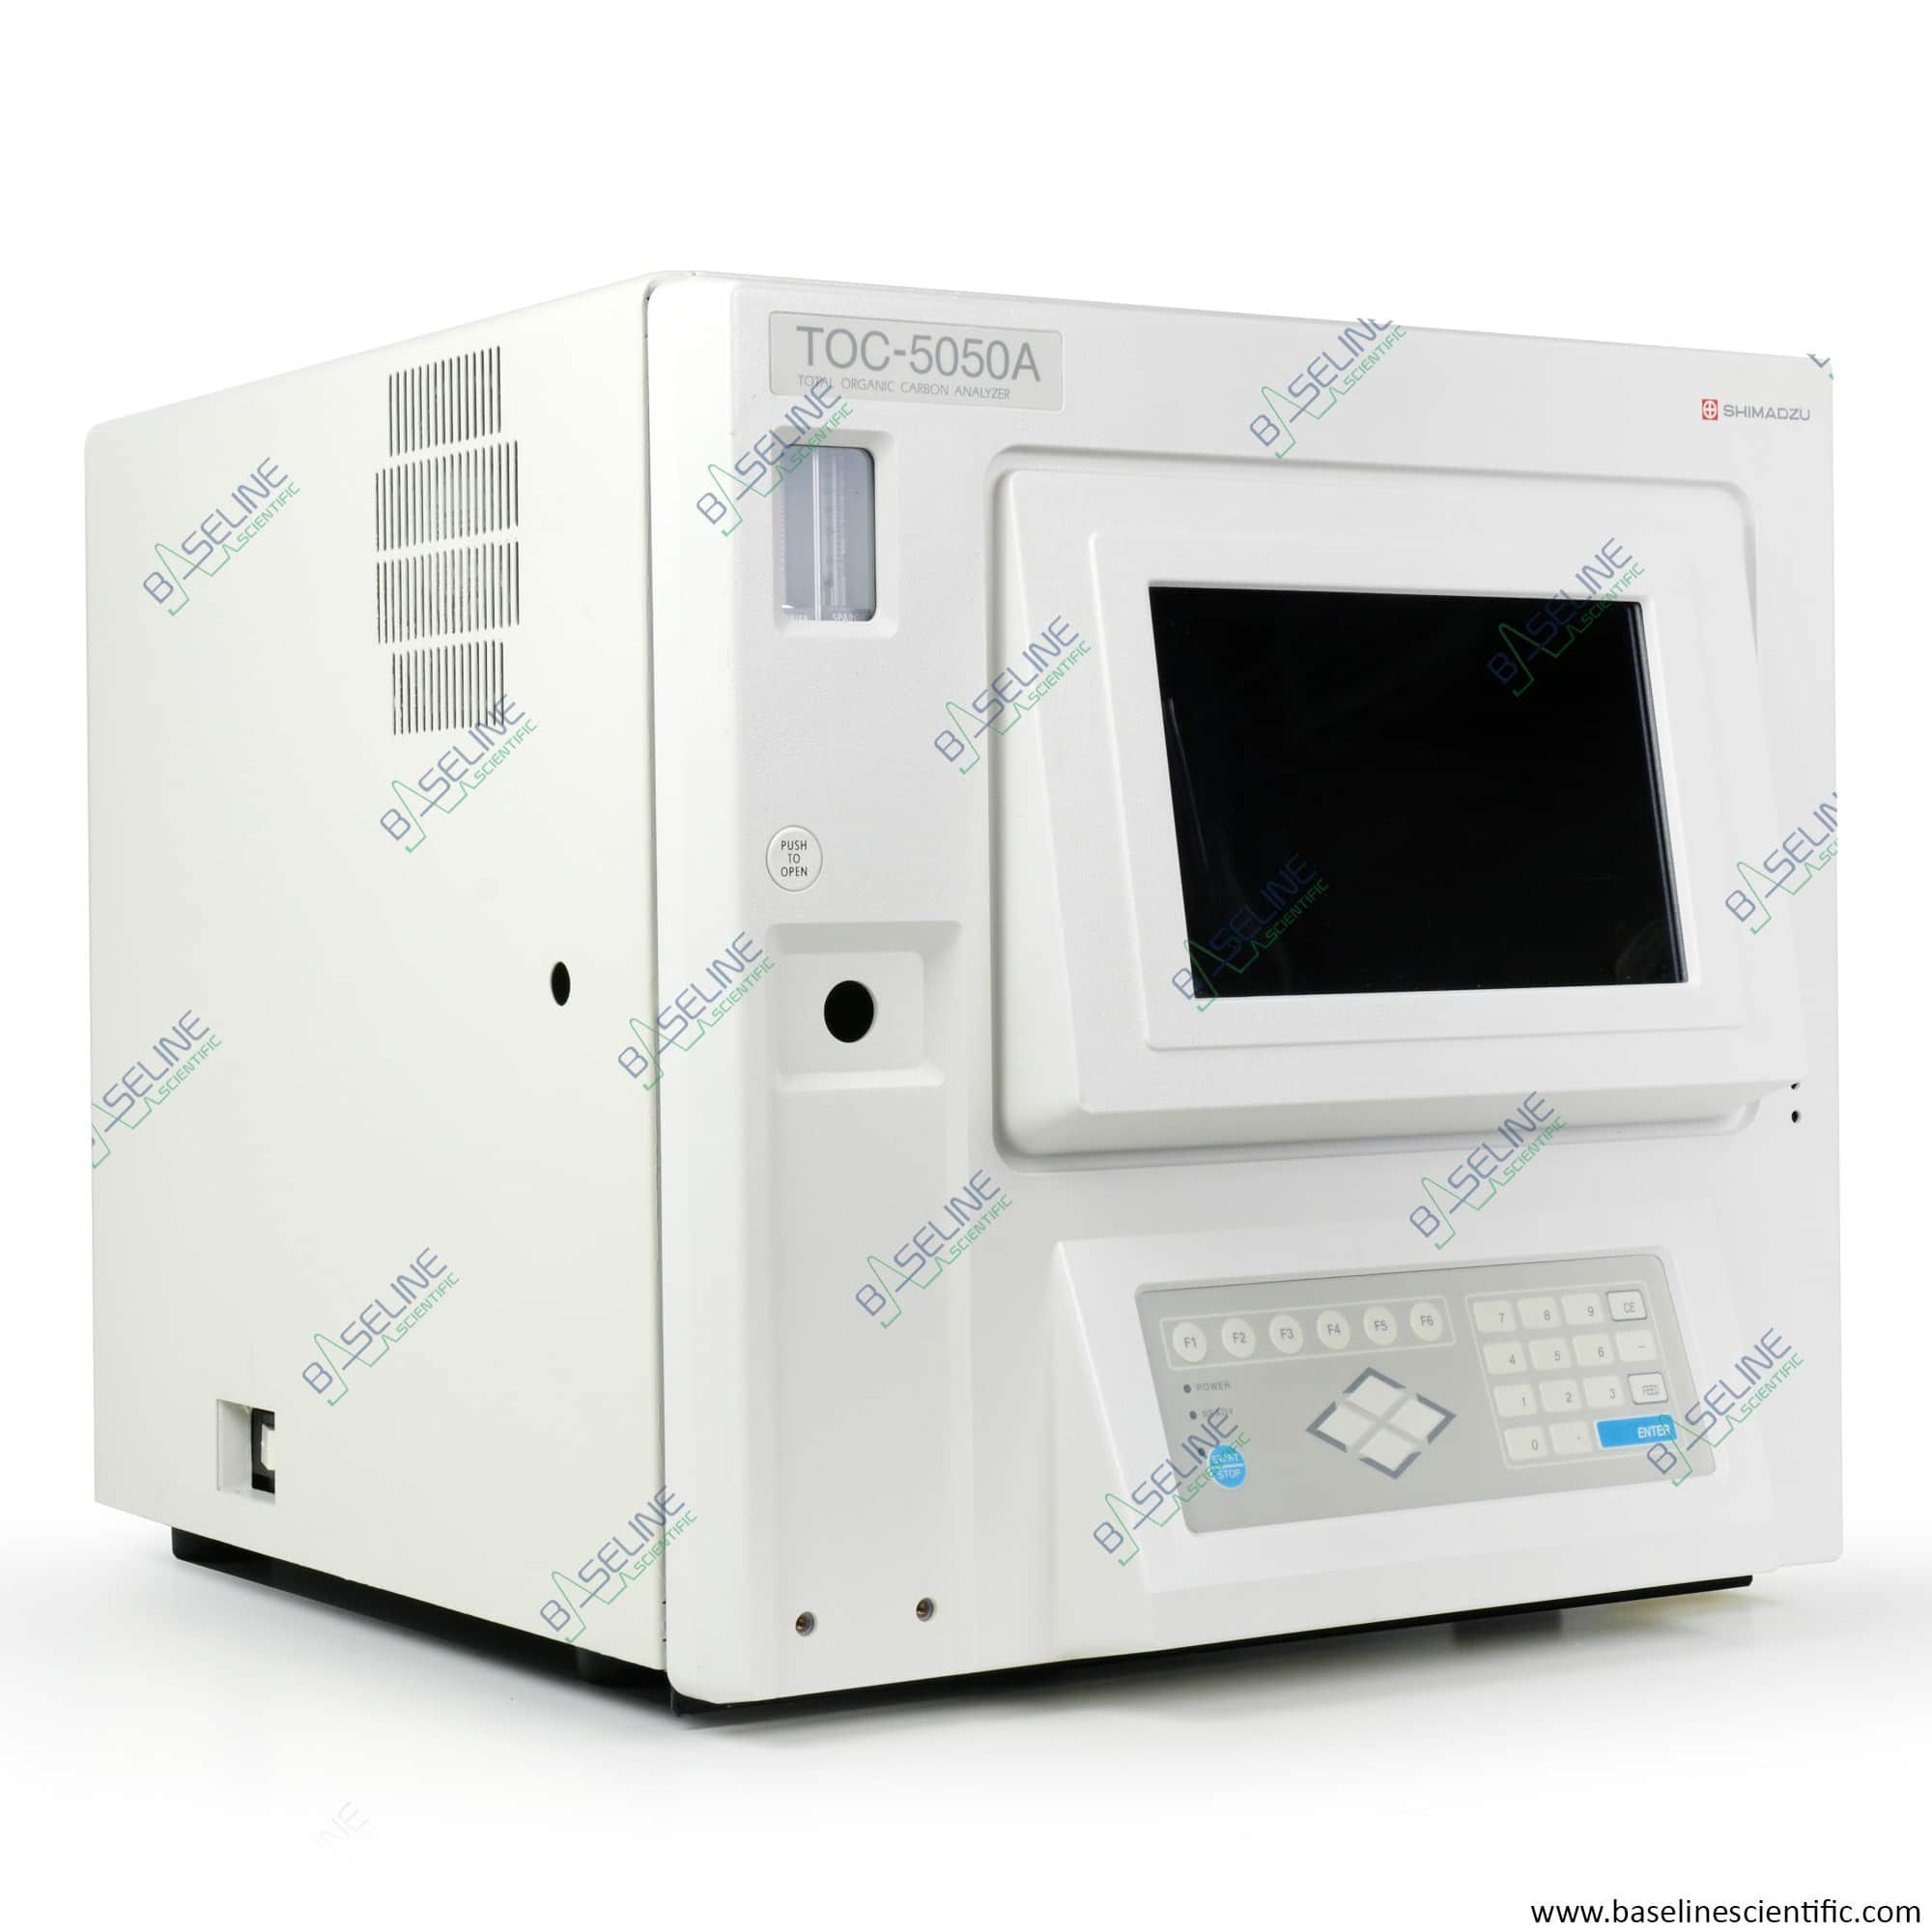 Refurbished Shimadzu TOC-5050A Total Carbon Analyzer with Control Software and ONE YEAR WARRANTY